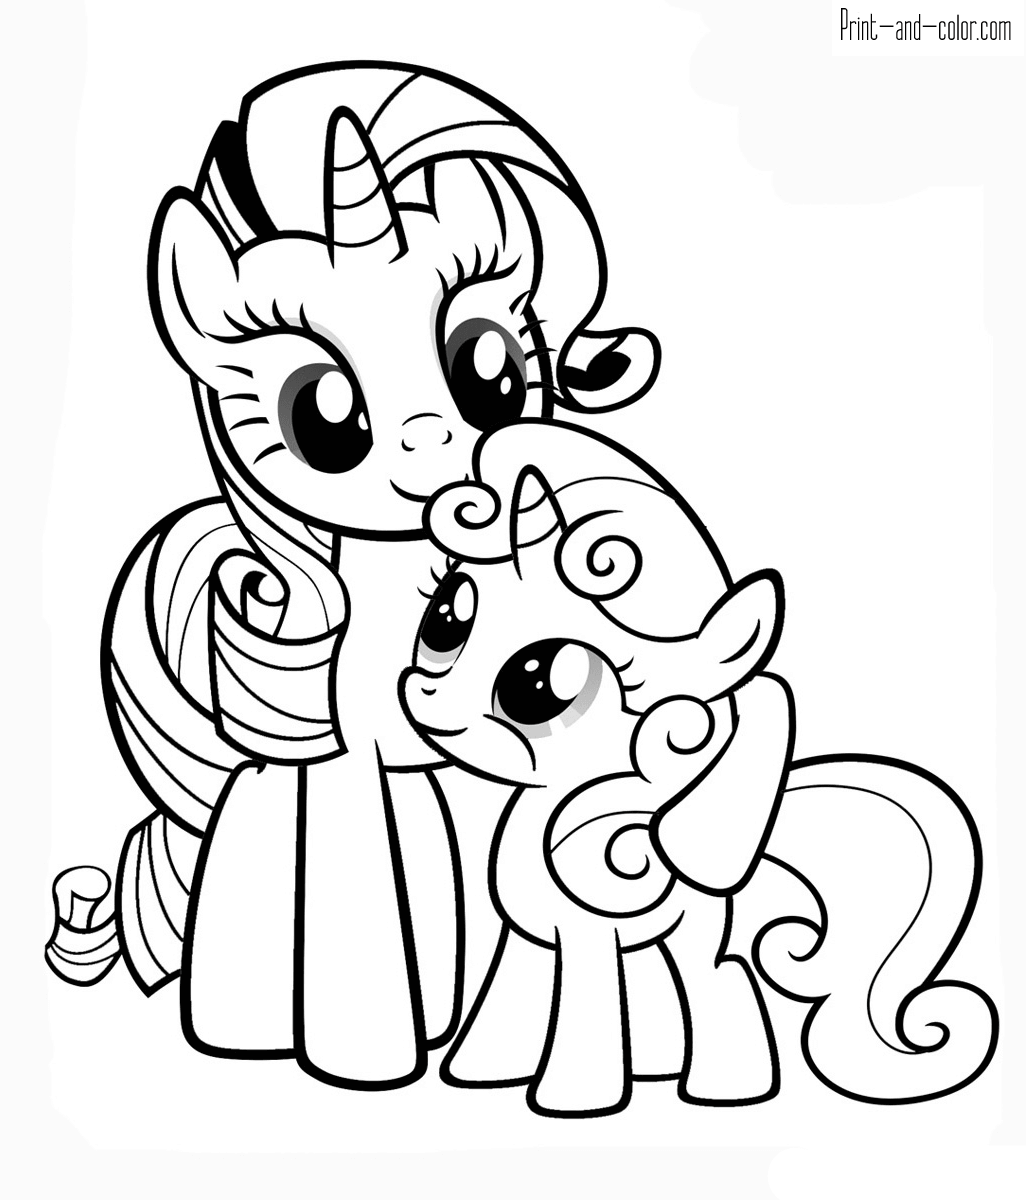 mlp coloring book my little pony retro coloring book simon schuster coloring mlp book